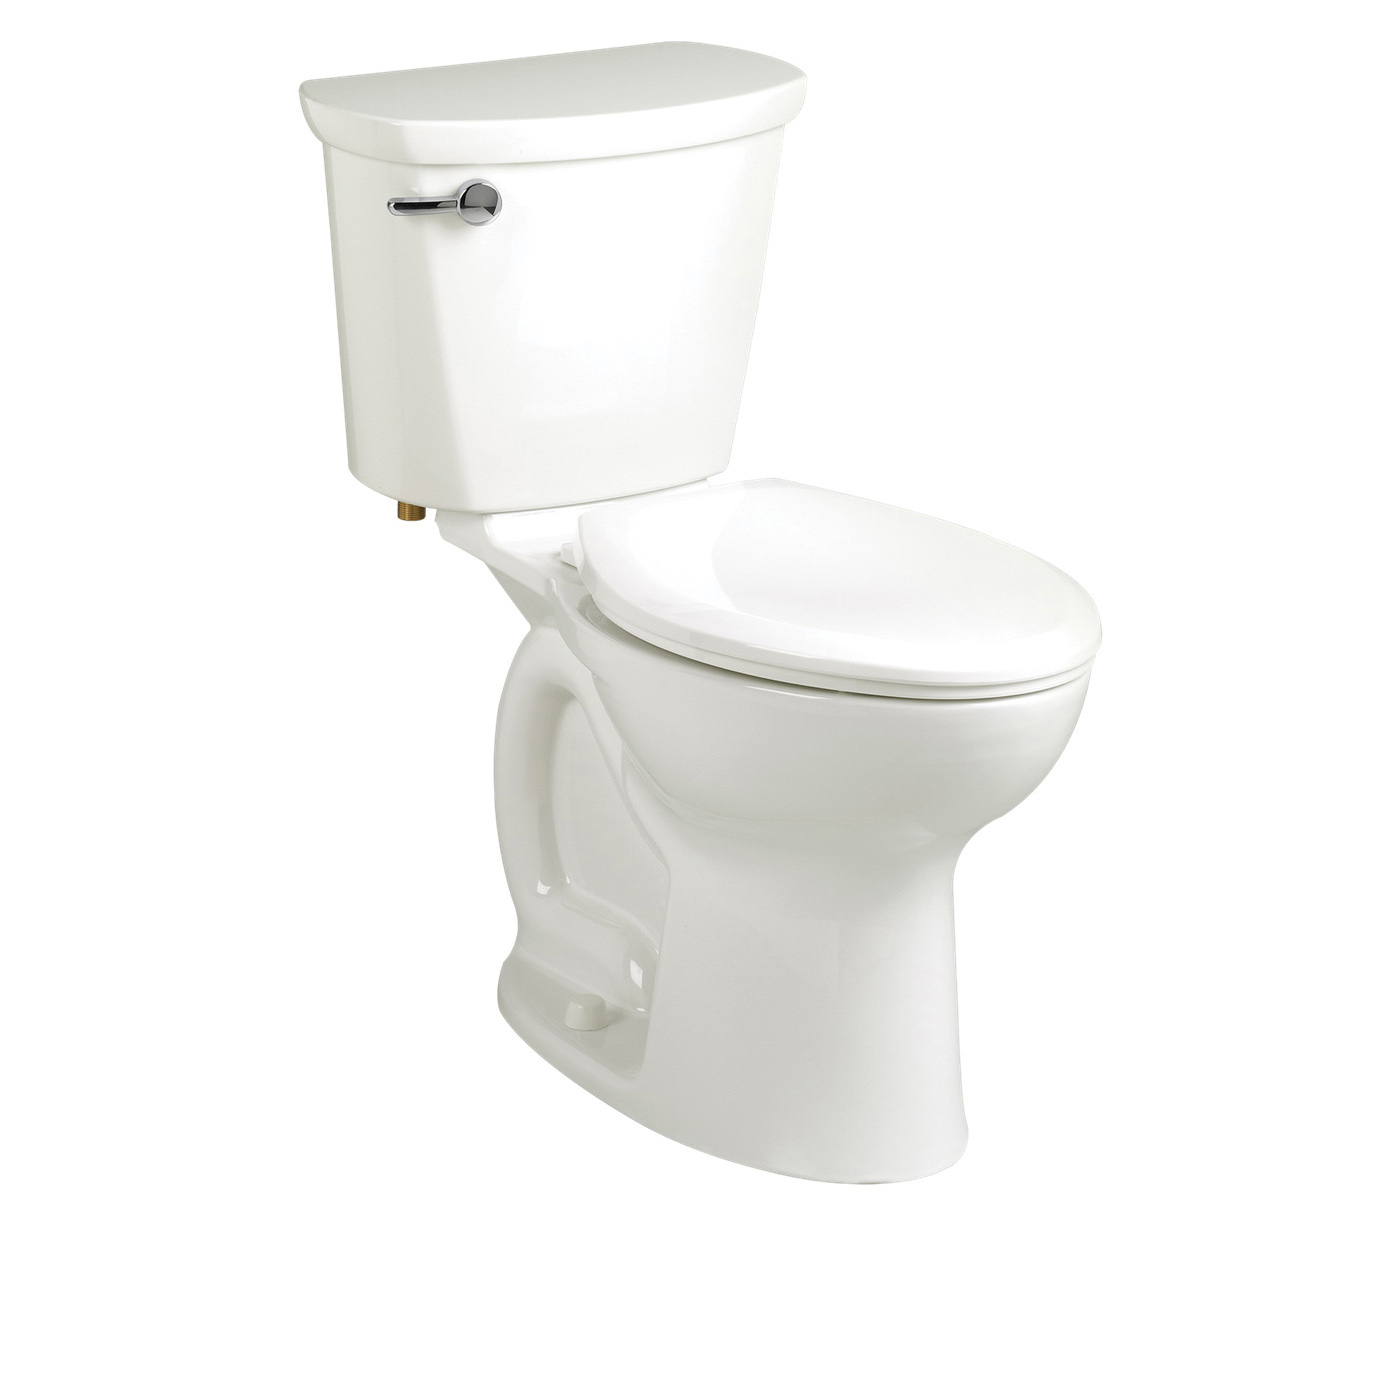 American Standard 215BA104.020 Cadet® Pro™ Right Height™ 2-Piece Toilet, Round Front Bowl, 16-1/2 in H Rim, 12 in Rough-In, 1.28 gpf Flush Rate, White, Import